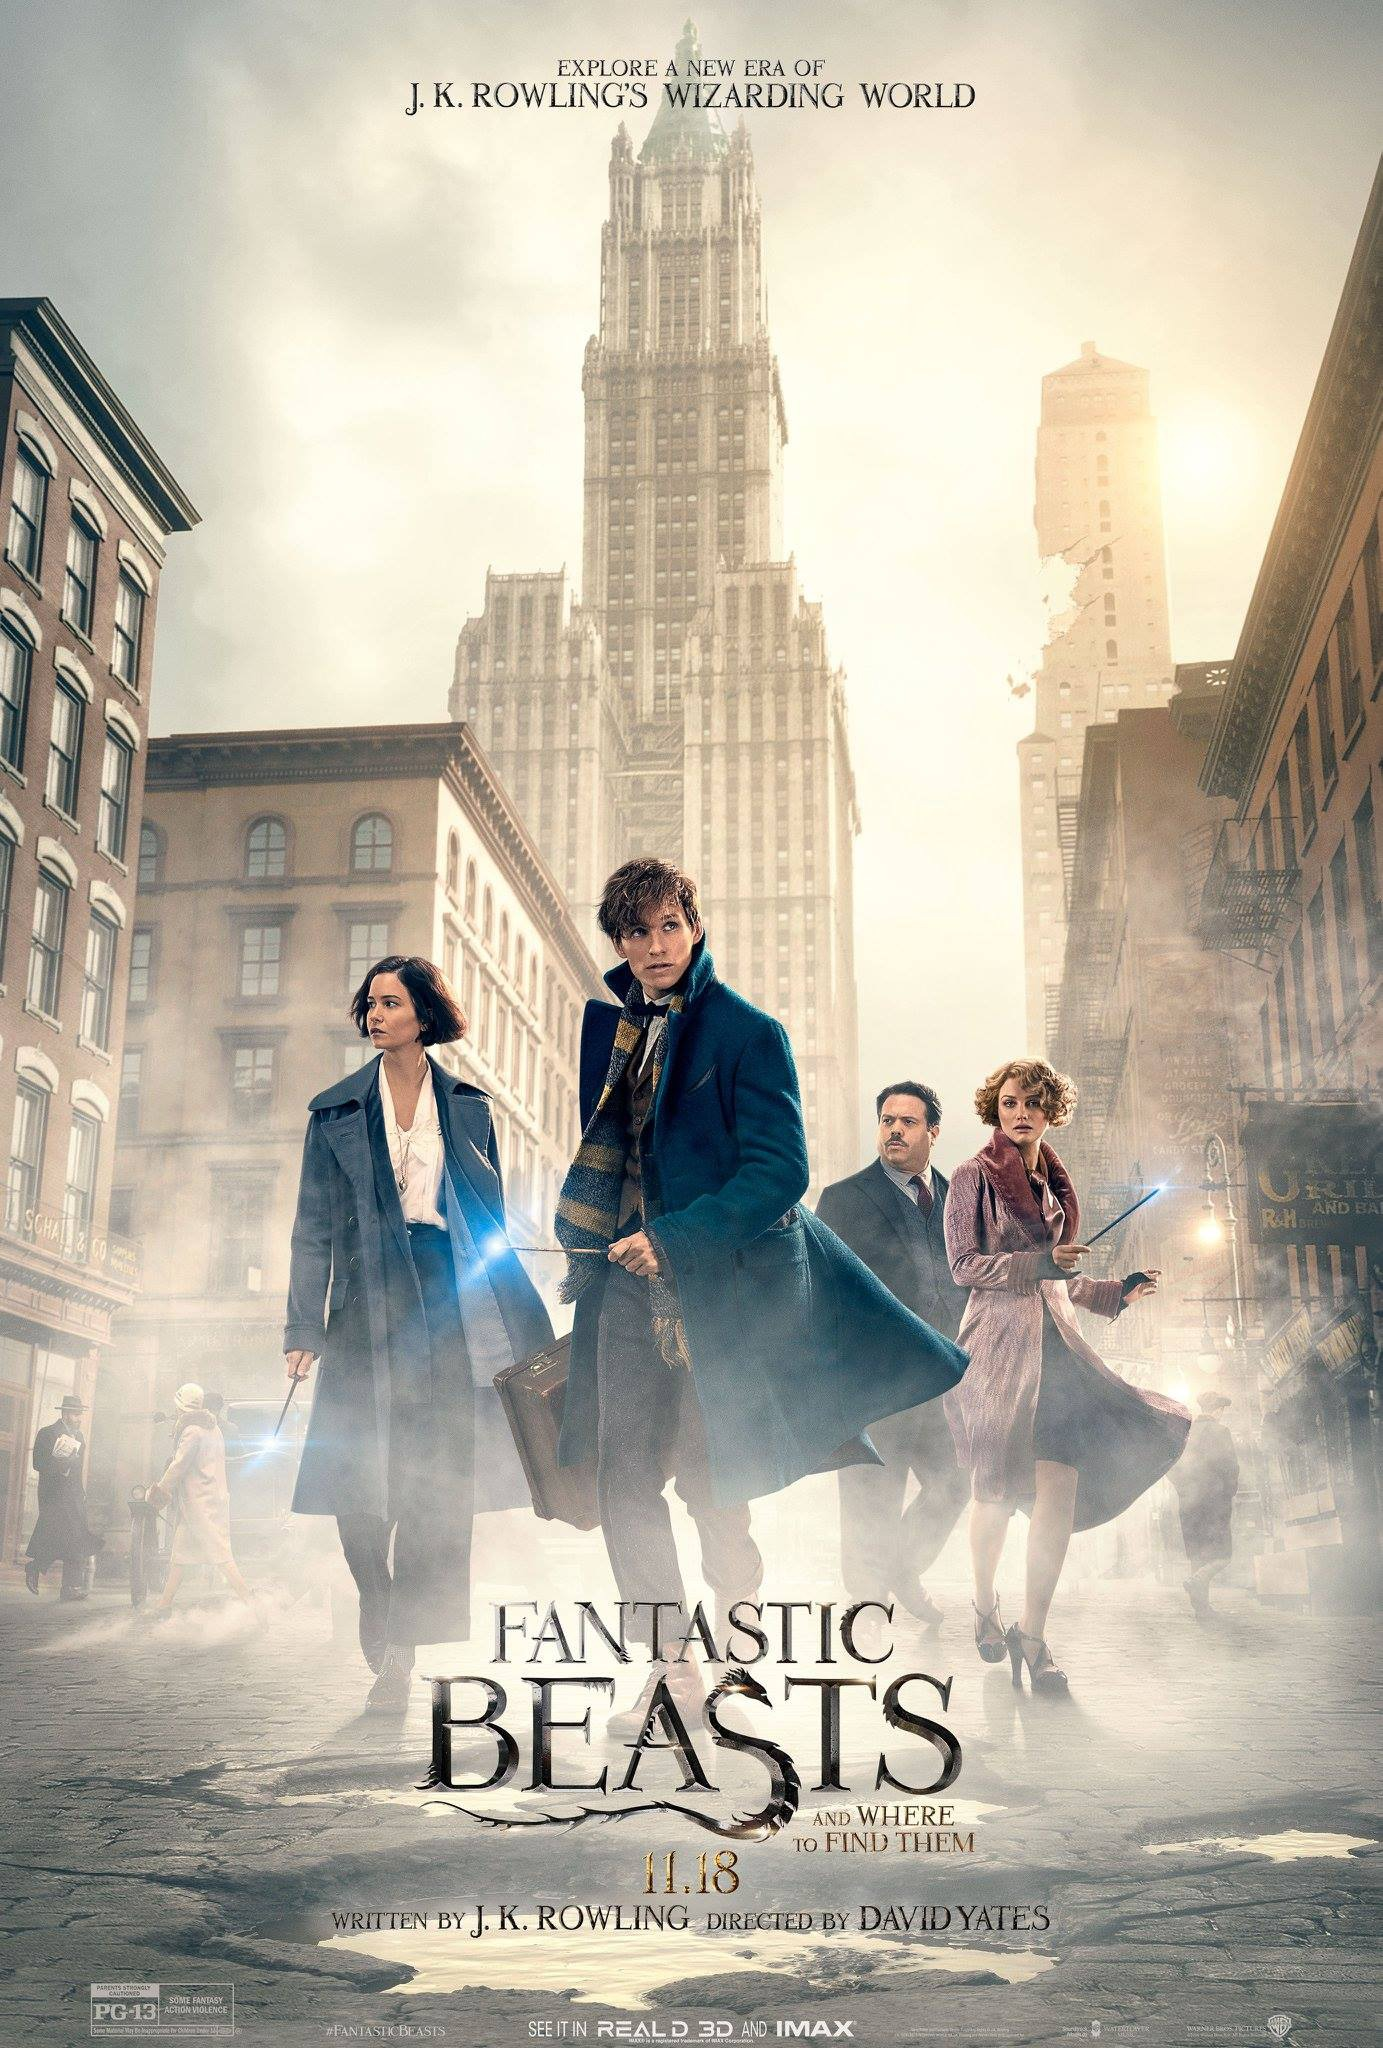 Episode 345: Fantastic Beasts and Where to Find Them